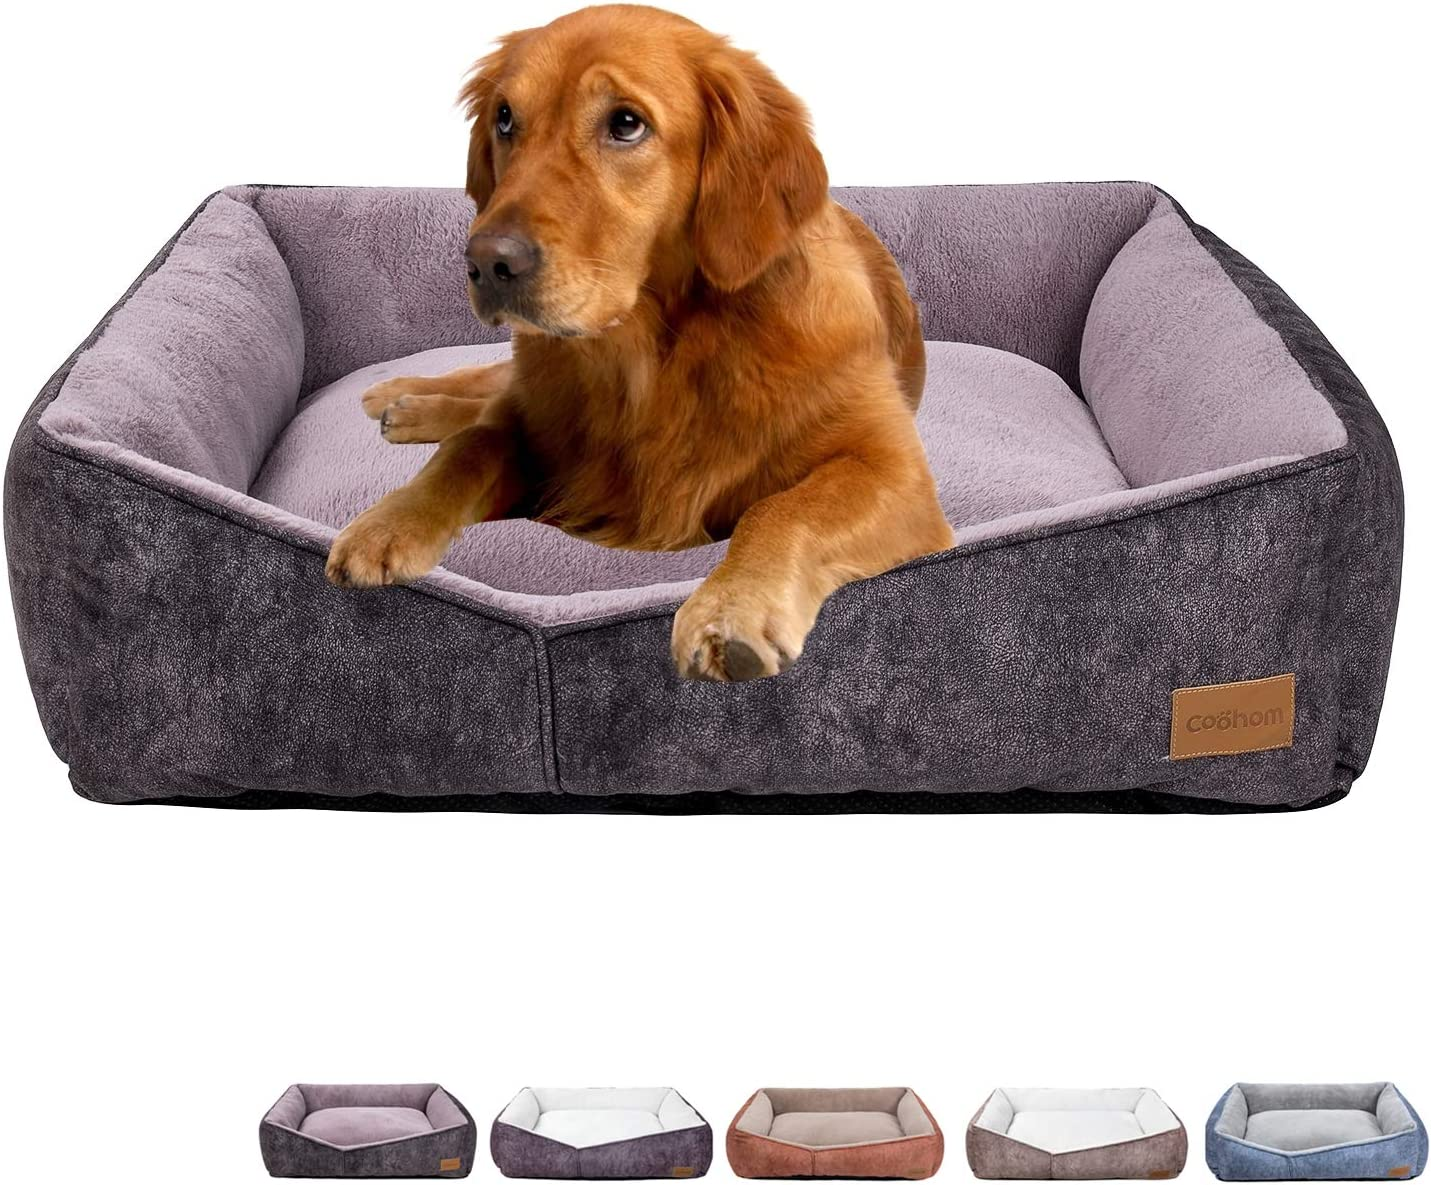 Coohom Rectangle Washable Dog Bed,Warming Comfortable Square Pet Bed Simple Design Style,Durable Dog Crate Bed for Medium Large Dogs (25 INCH, Brown)